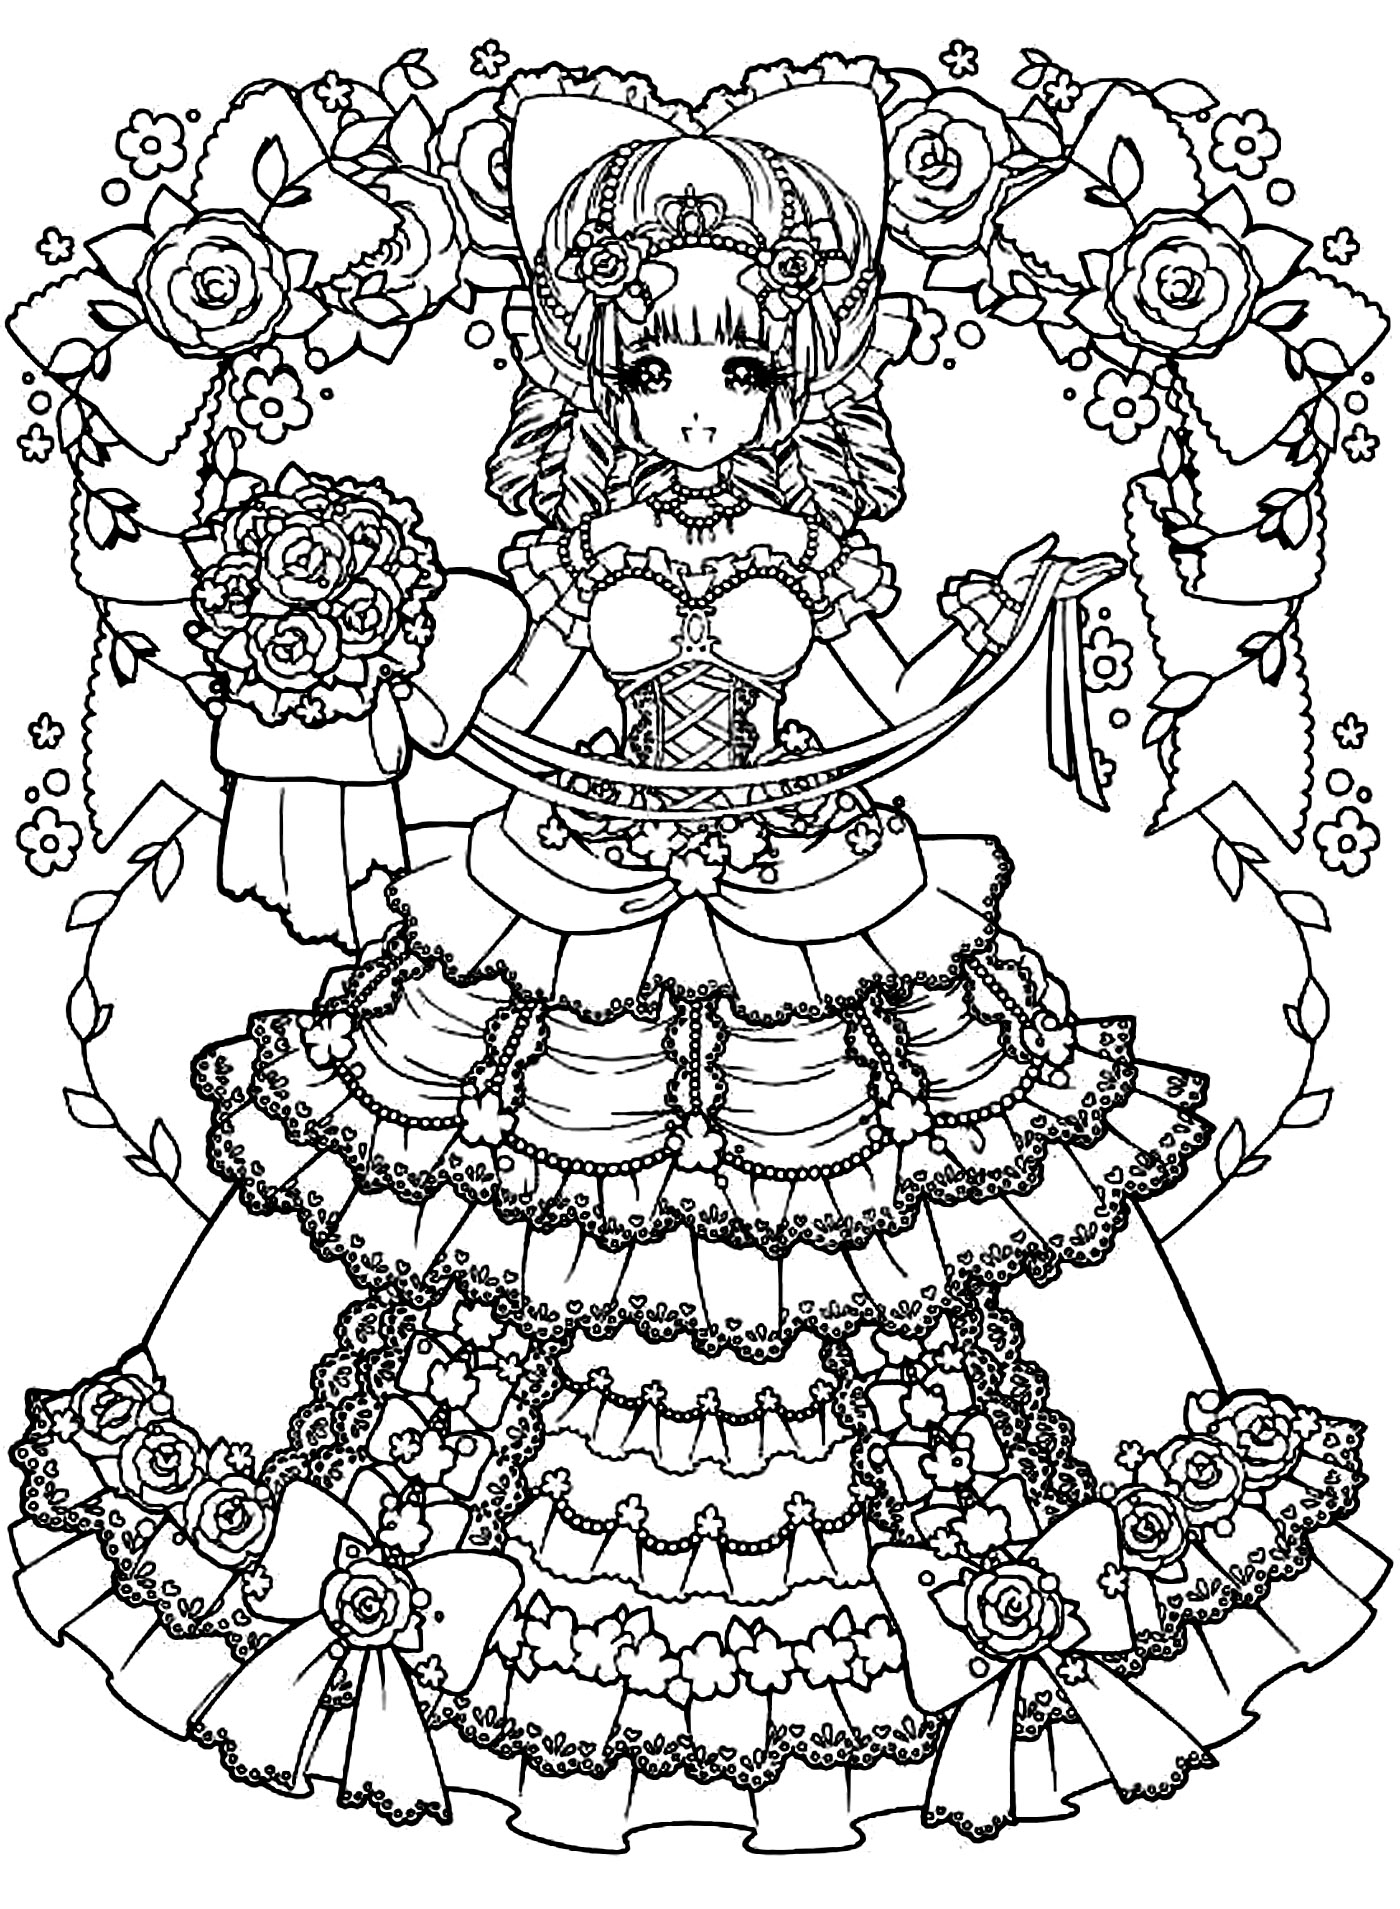 coloring pages for girls dresses back to childhood manga girl dress manga anime adult dresses for coloring pages girls